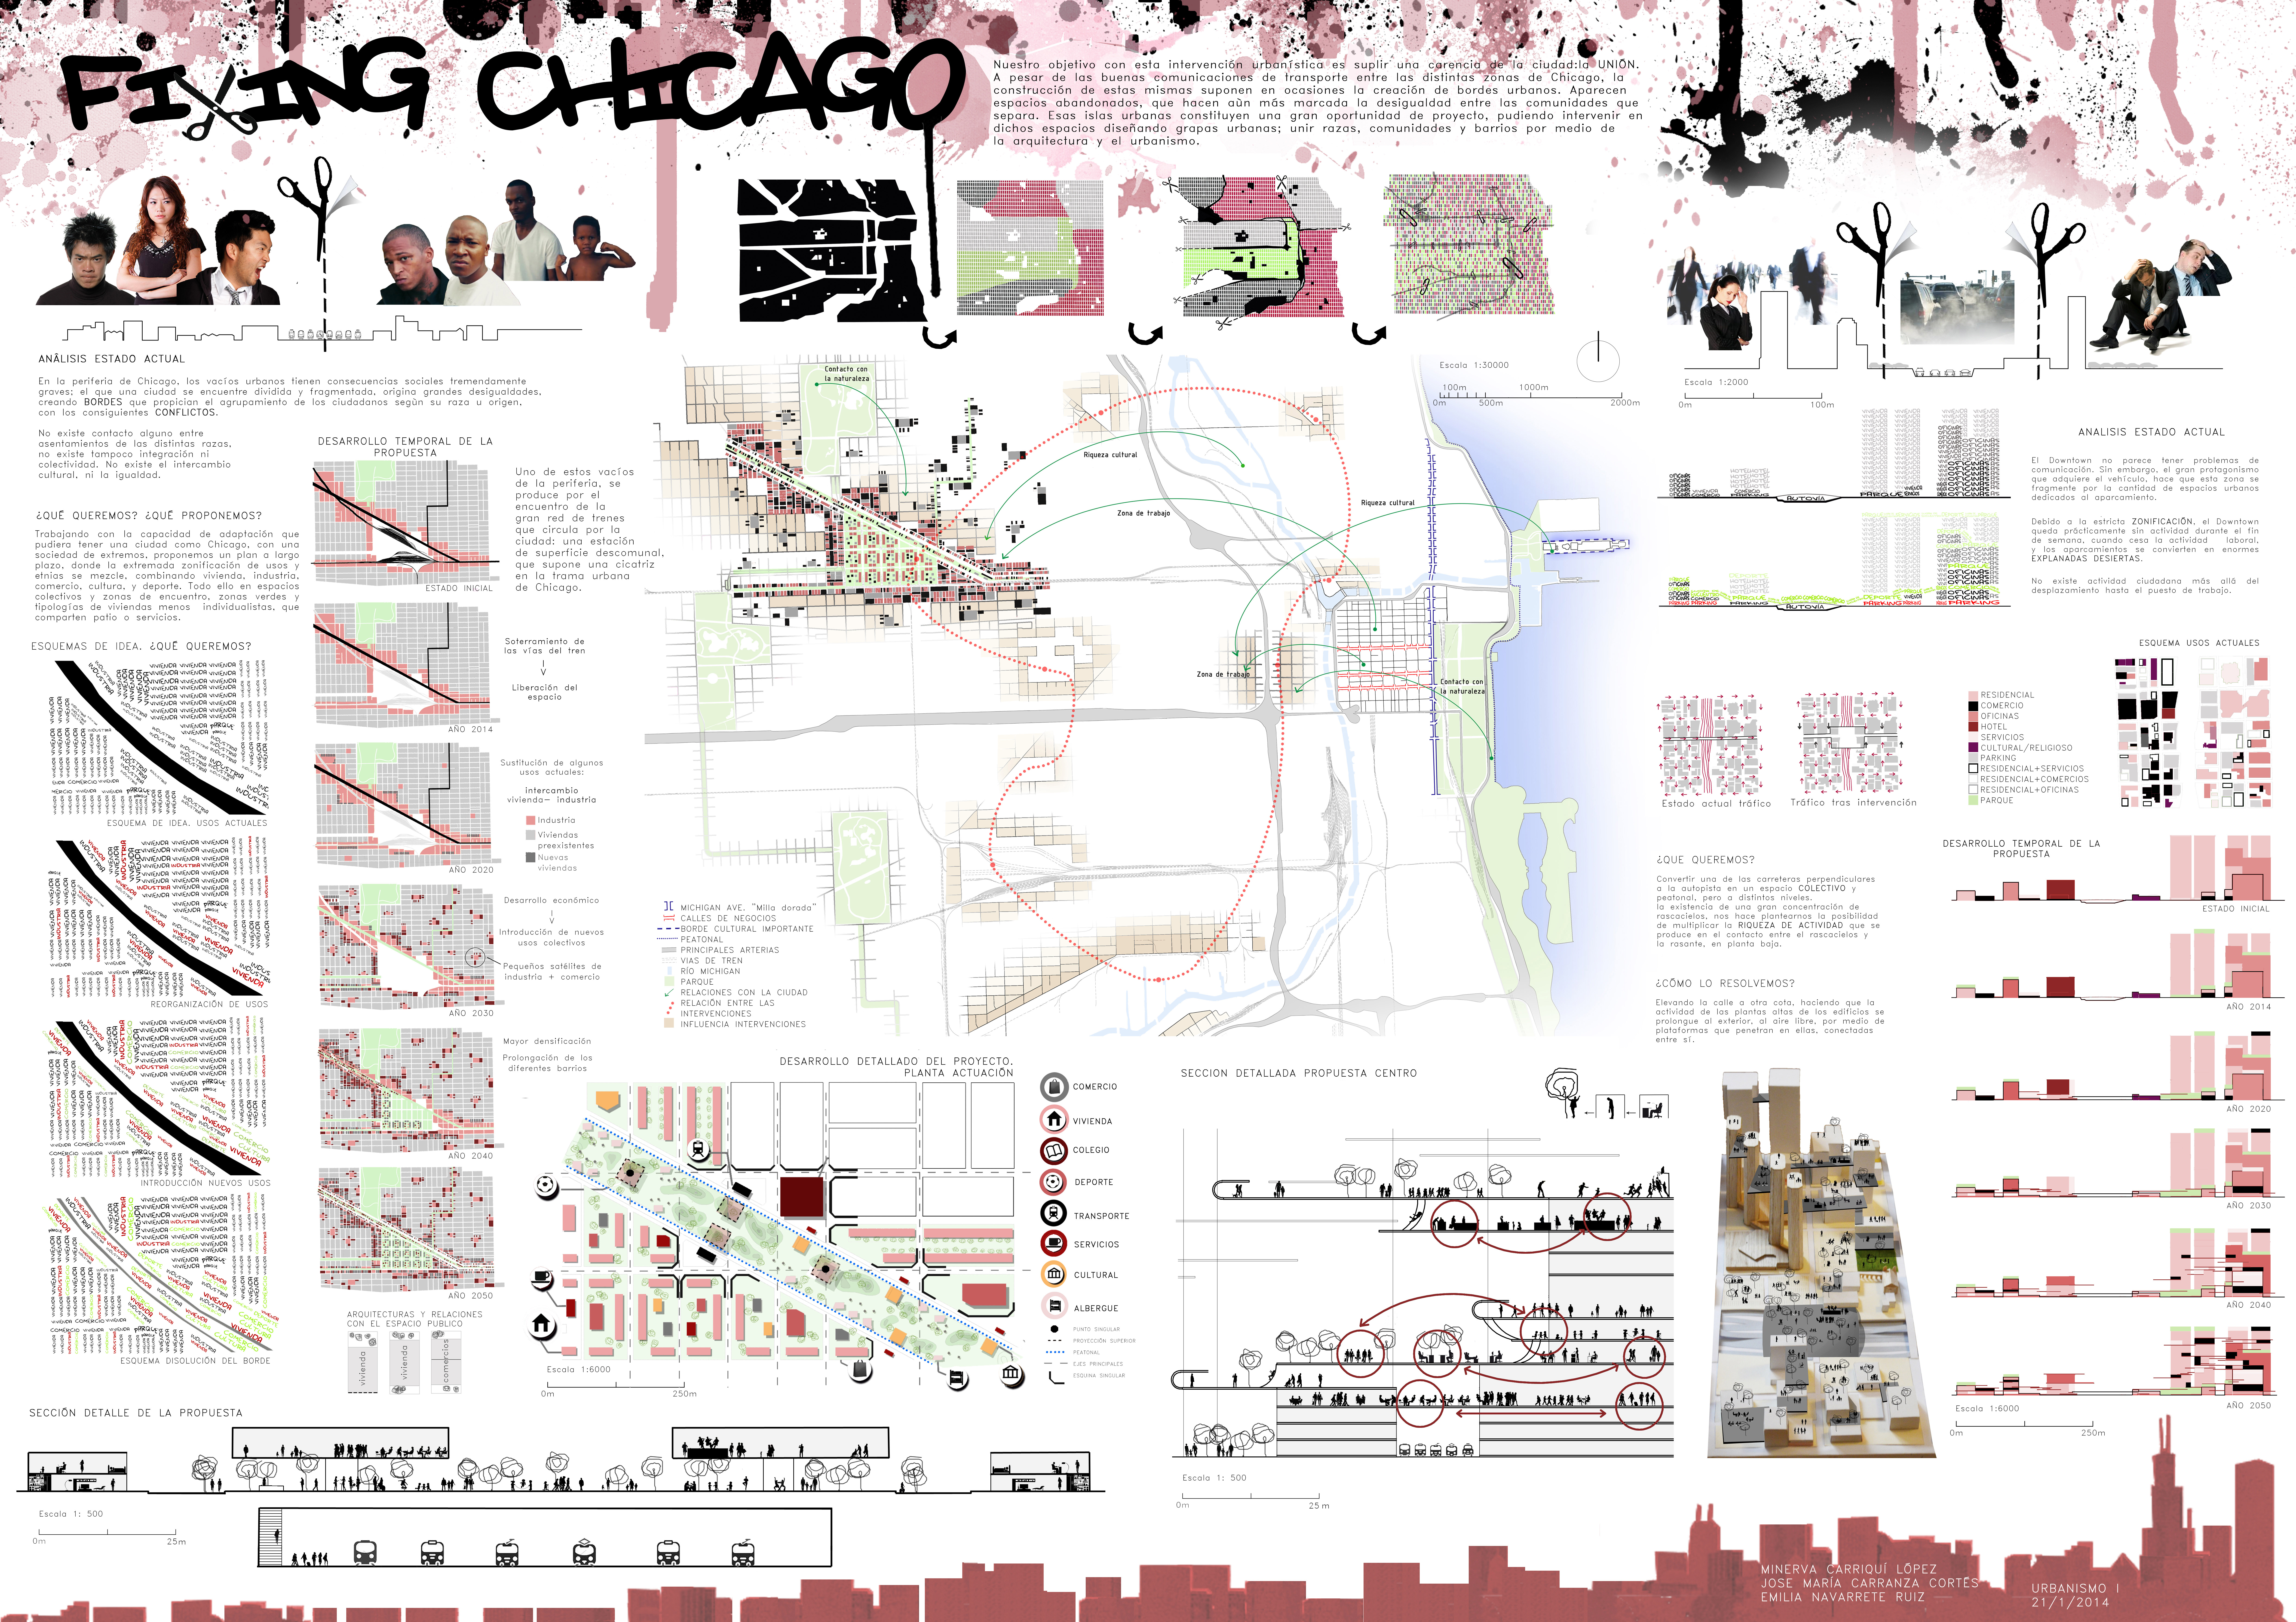 FIXING CHICAGO